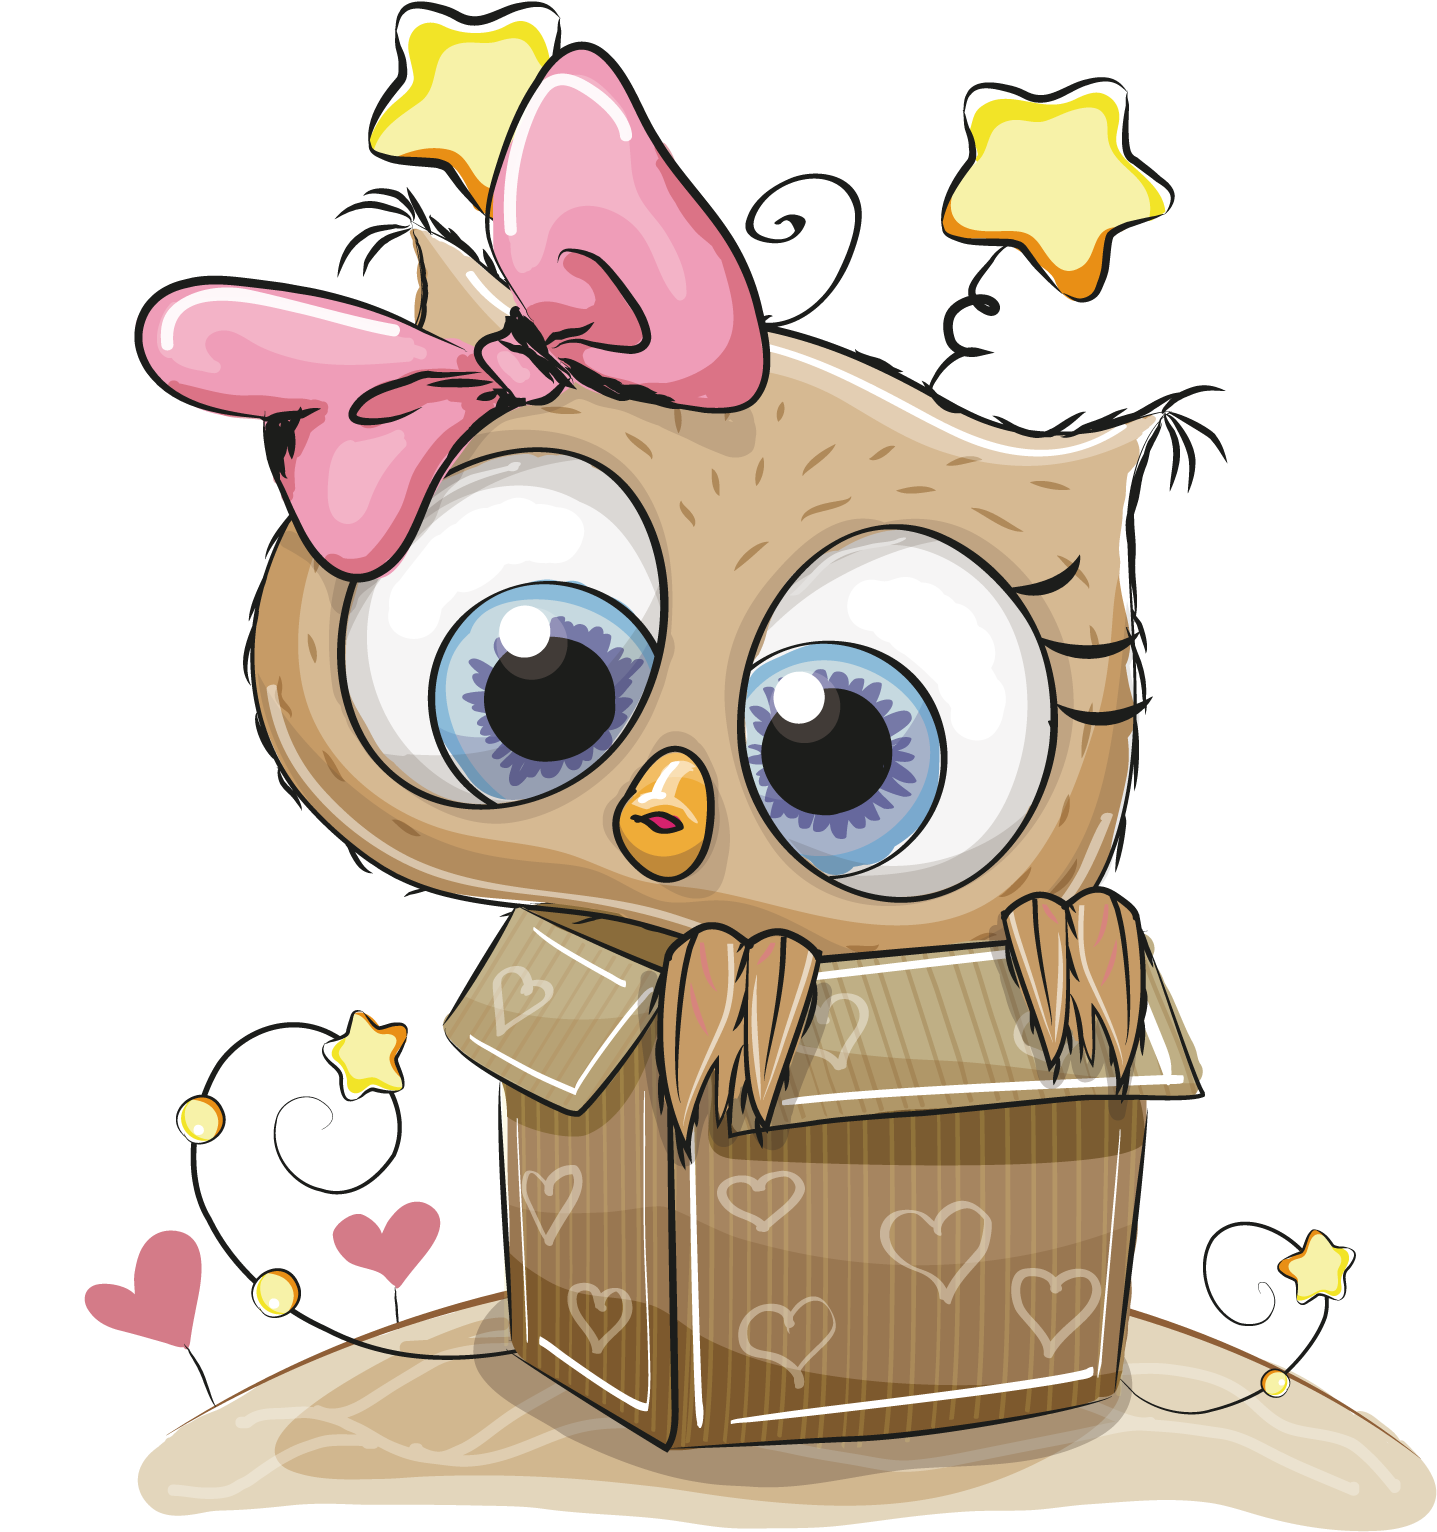 A box for you clipart svg black and white download HD Box Owl Coloring Gift Book Child Drawing Clipart - Cute Thank You ... svg black and white download